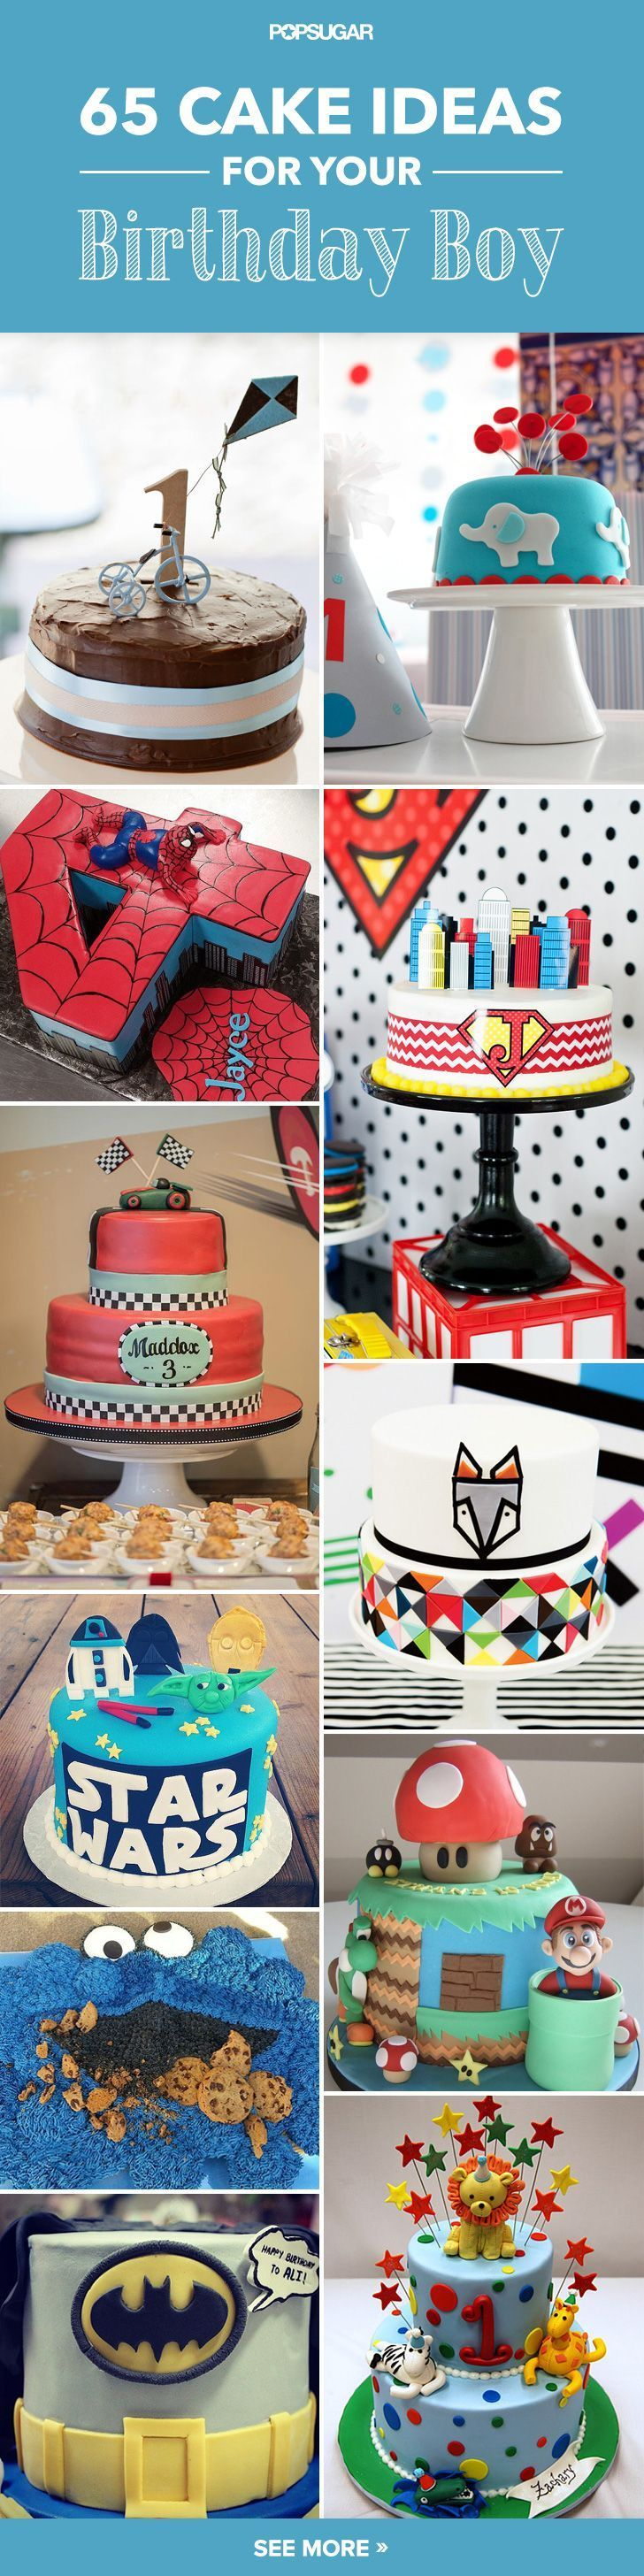 65 of the Very Best Cake Ideas For Your Birthday Boy Birthday